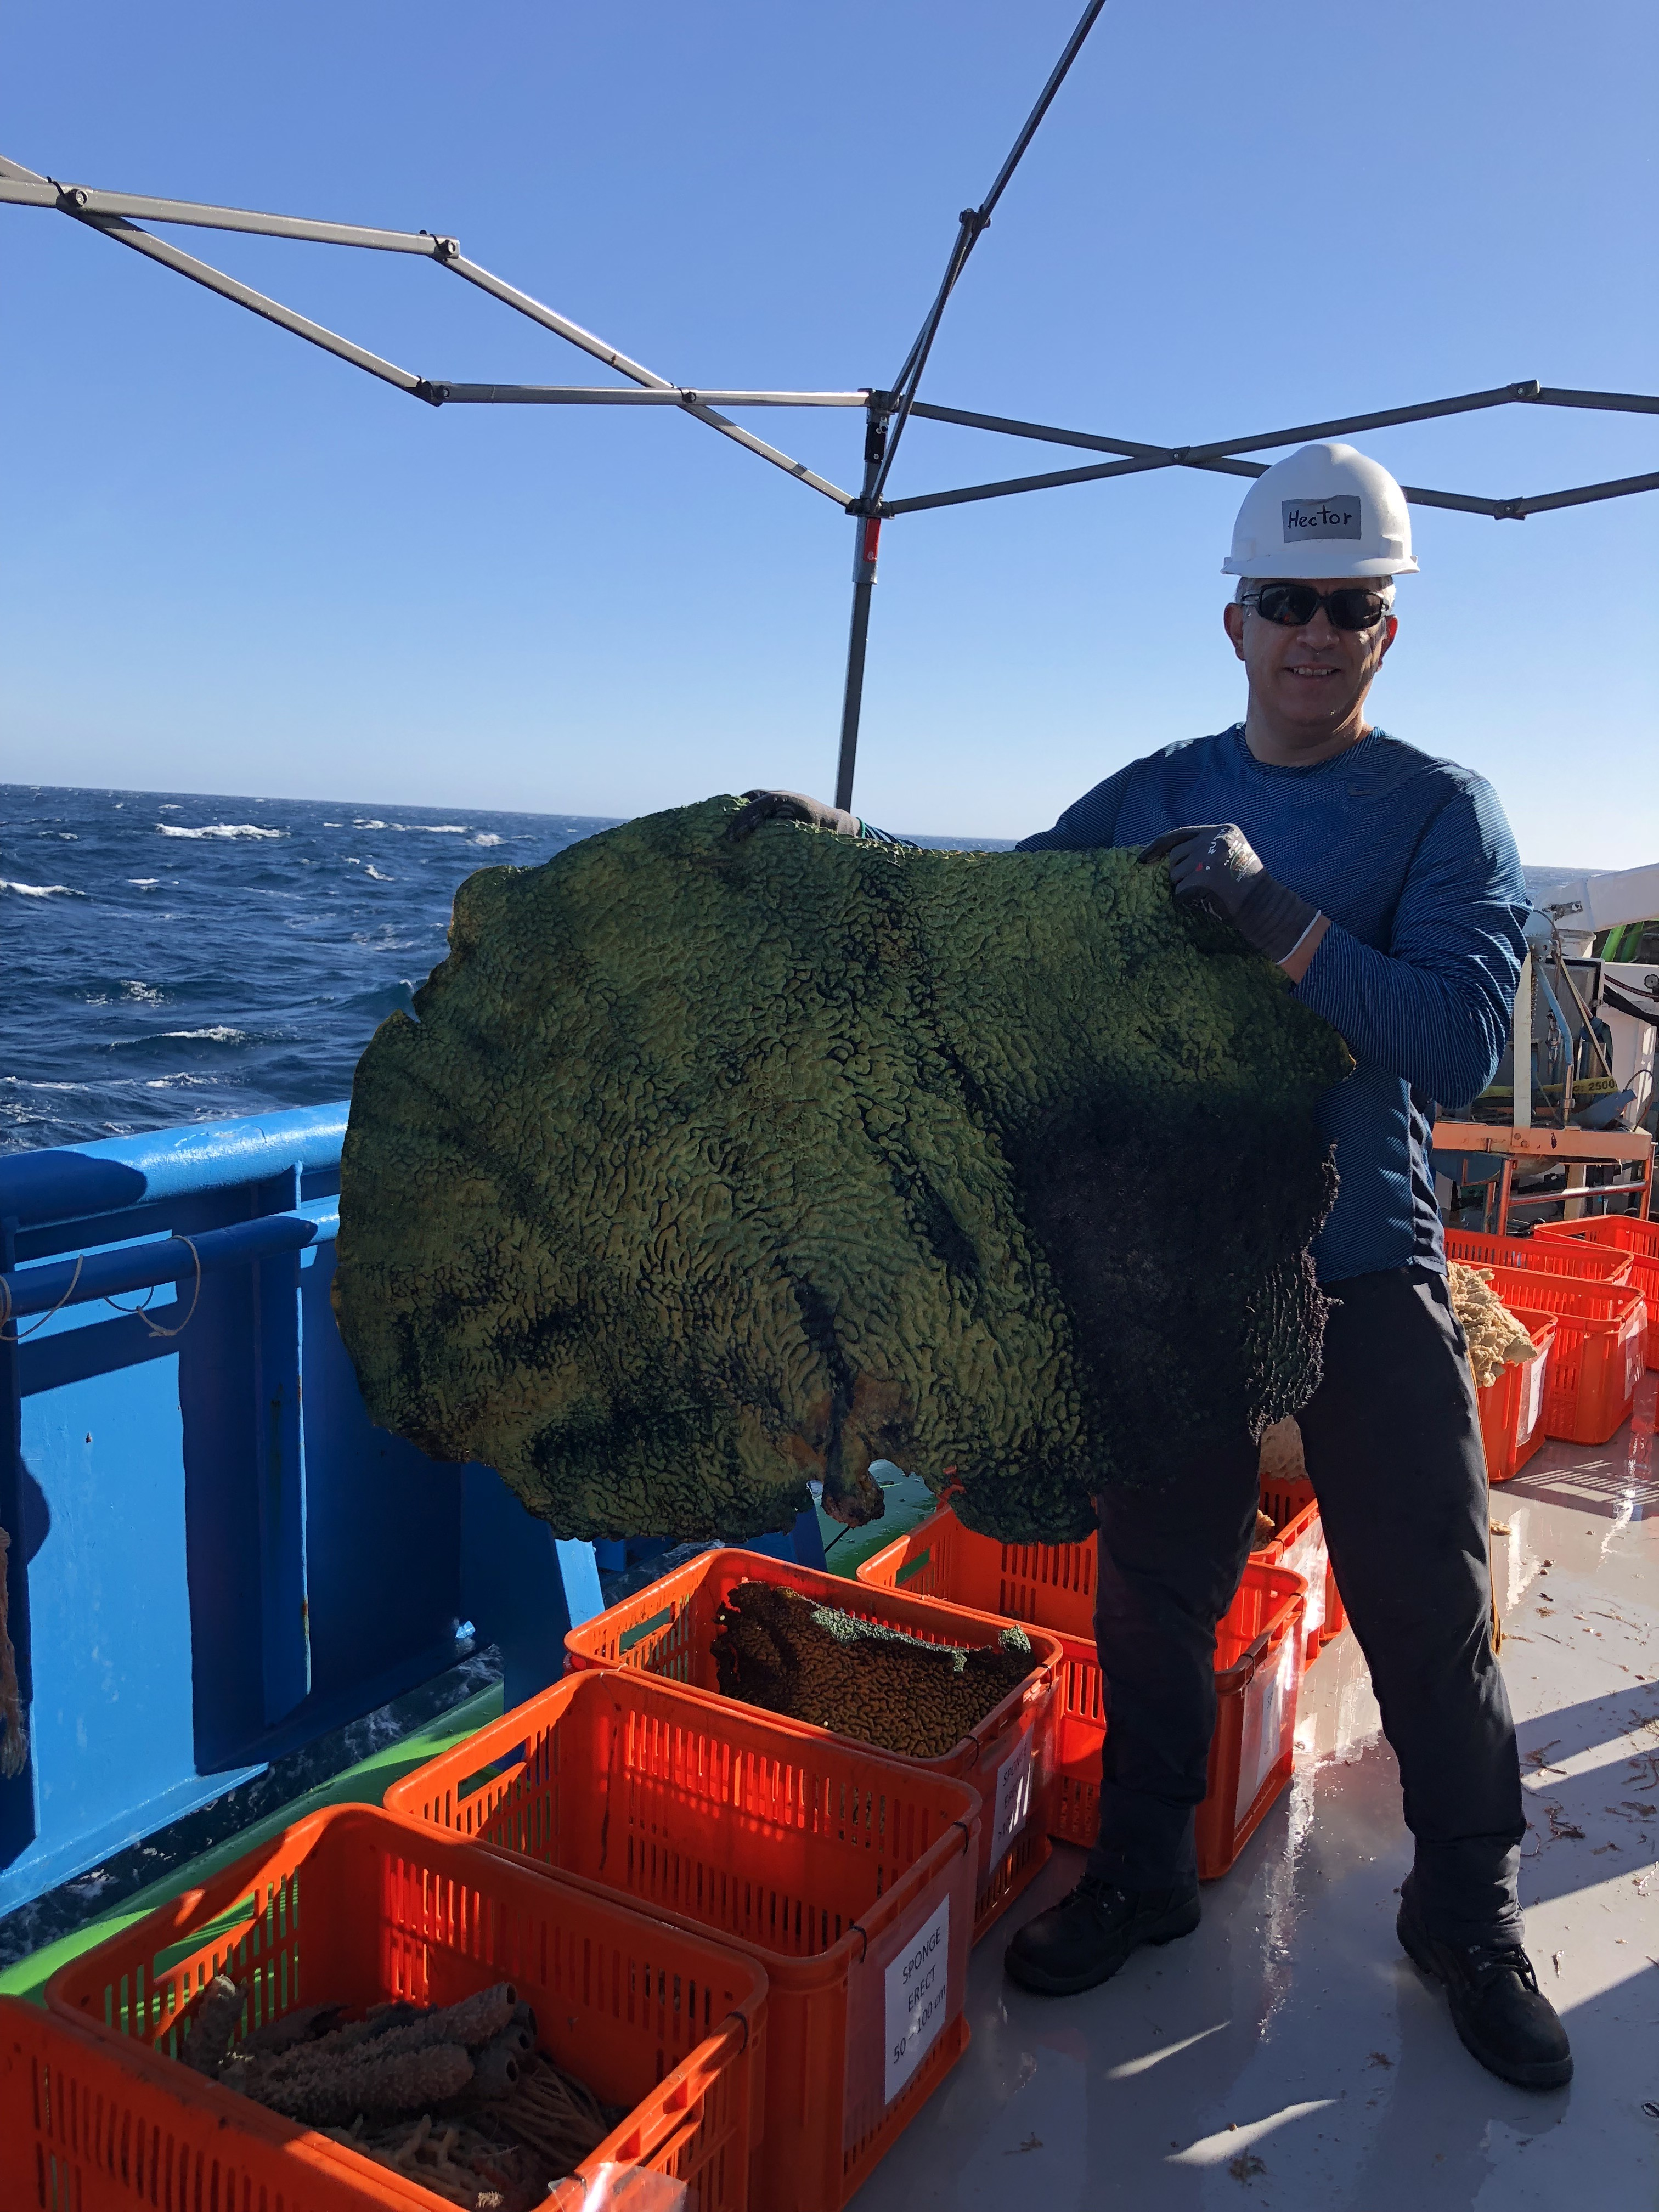 Scientists standing on the deck of the RV Investigator with marine biodiversity samples.